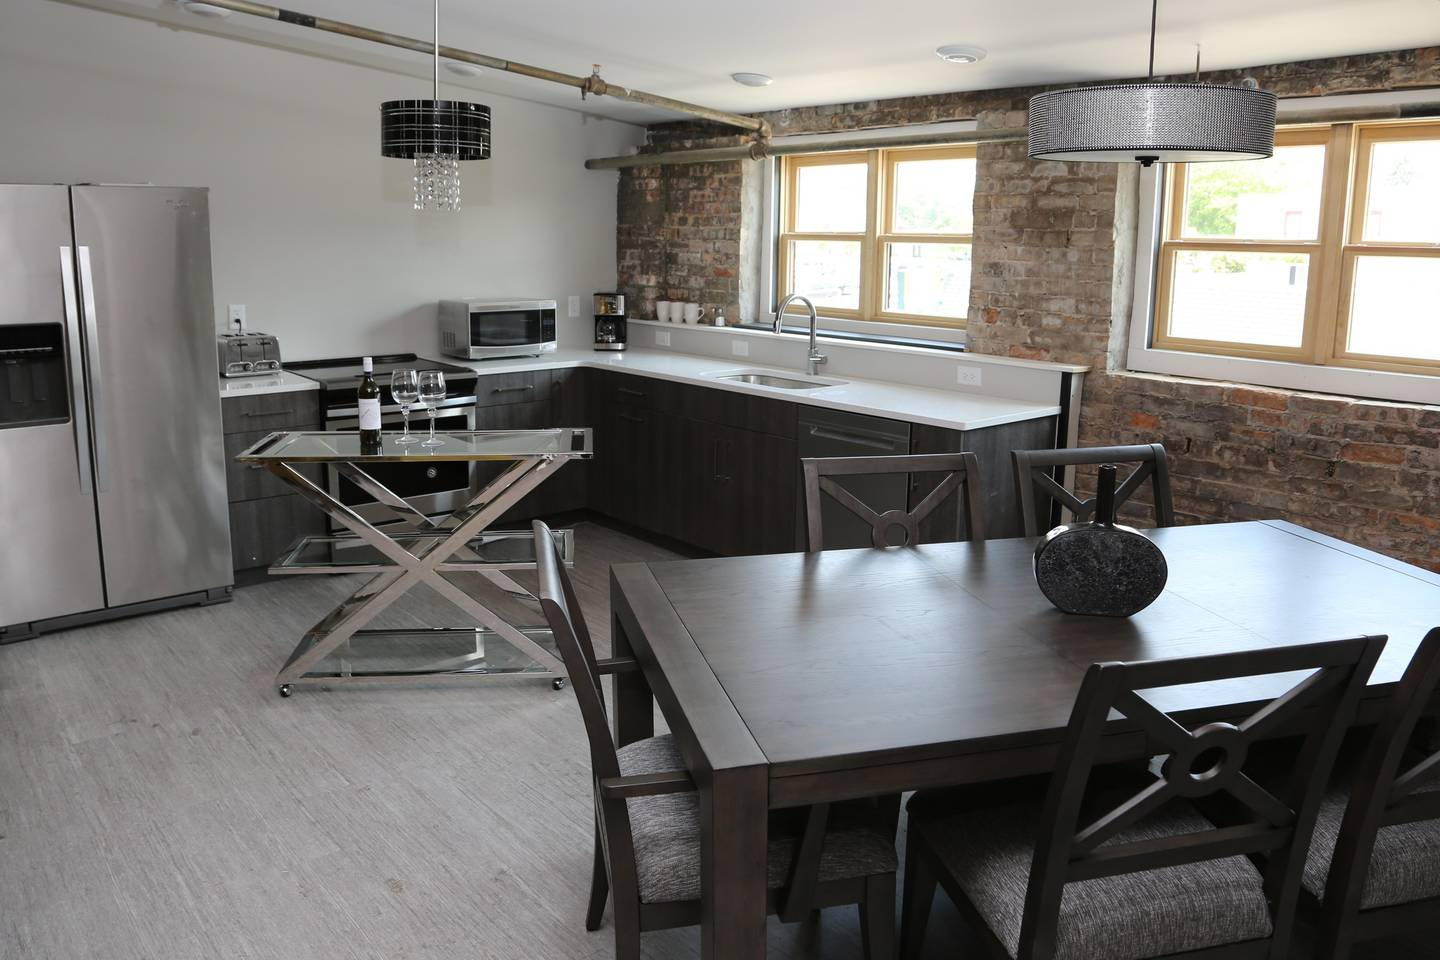 Unit 1 - This two-bedroom, two-full bathroom loft features a more contemporary design and will sleep eight. The master bedroom includes a luxurious king bed, reading area and television. A full kitchen, including stainless appliances, dishes and other kitchenware also includes an island and a dining table to seat eight. Exposed brick, contemporary furnishings and interesting architectural details make the great room a wonderful place for family and friends to gather.